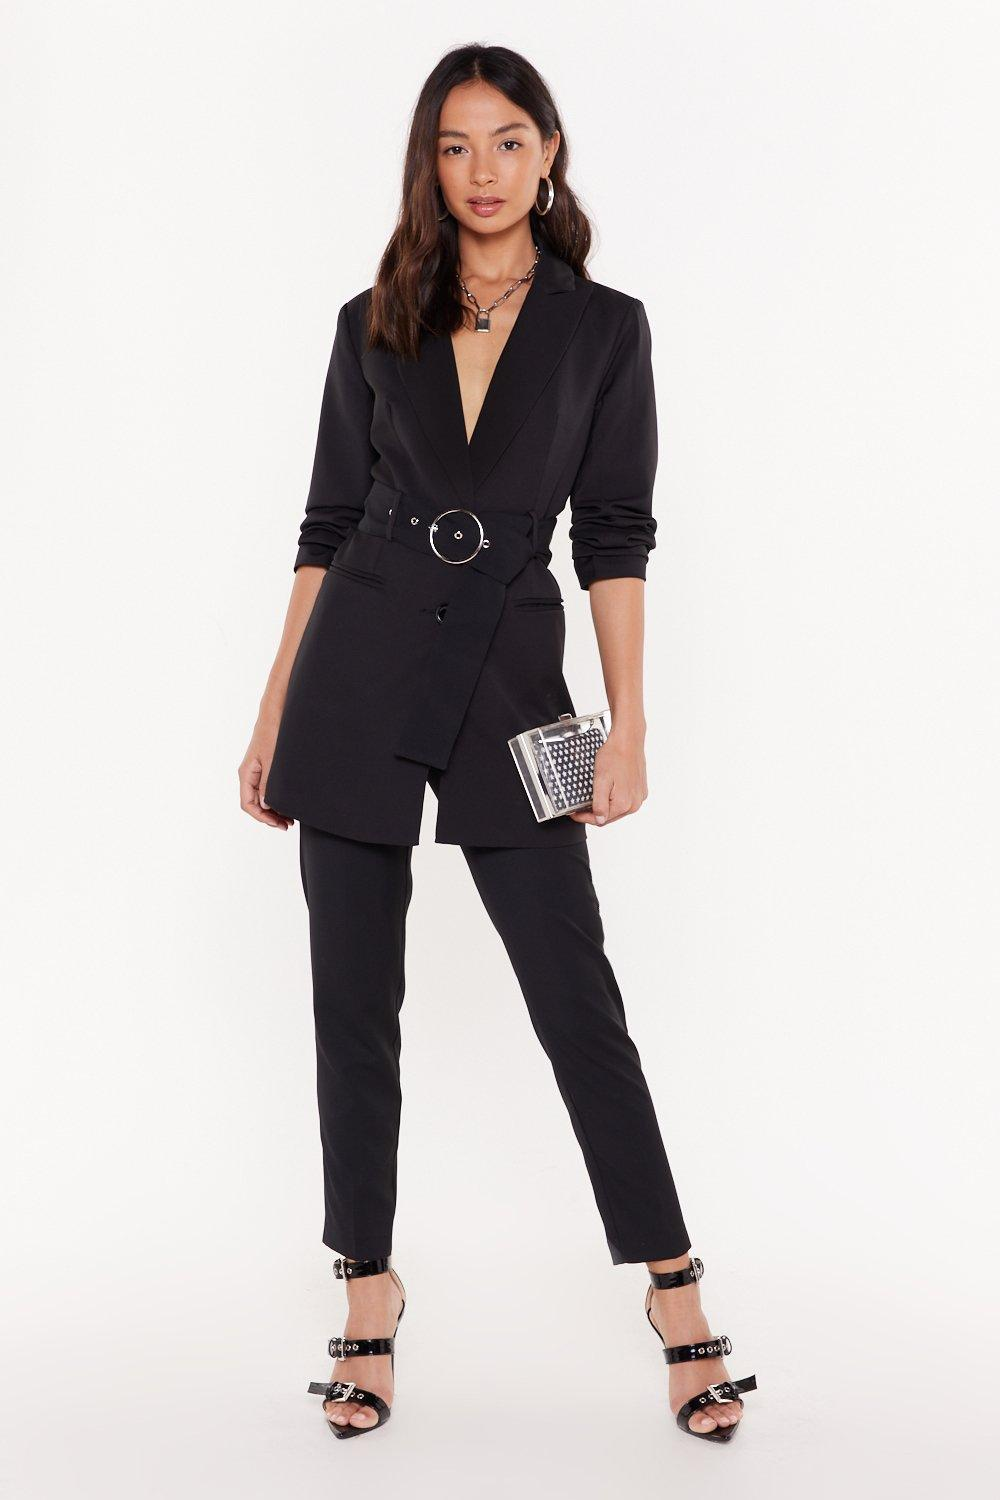 Tailor On Through High Waisted Trousers by Nasty Gal